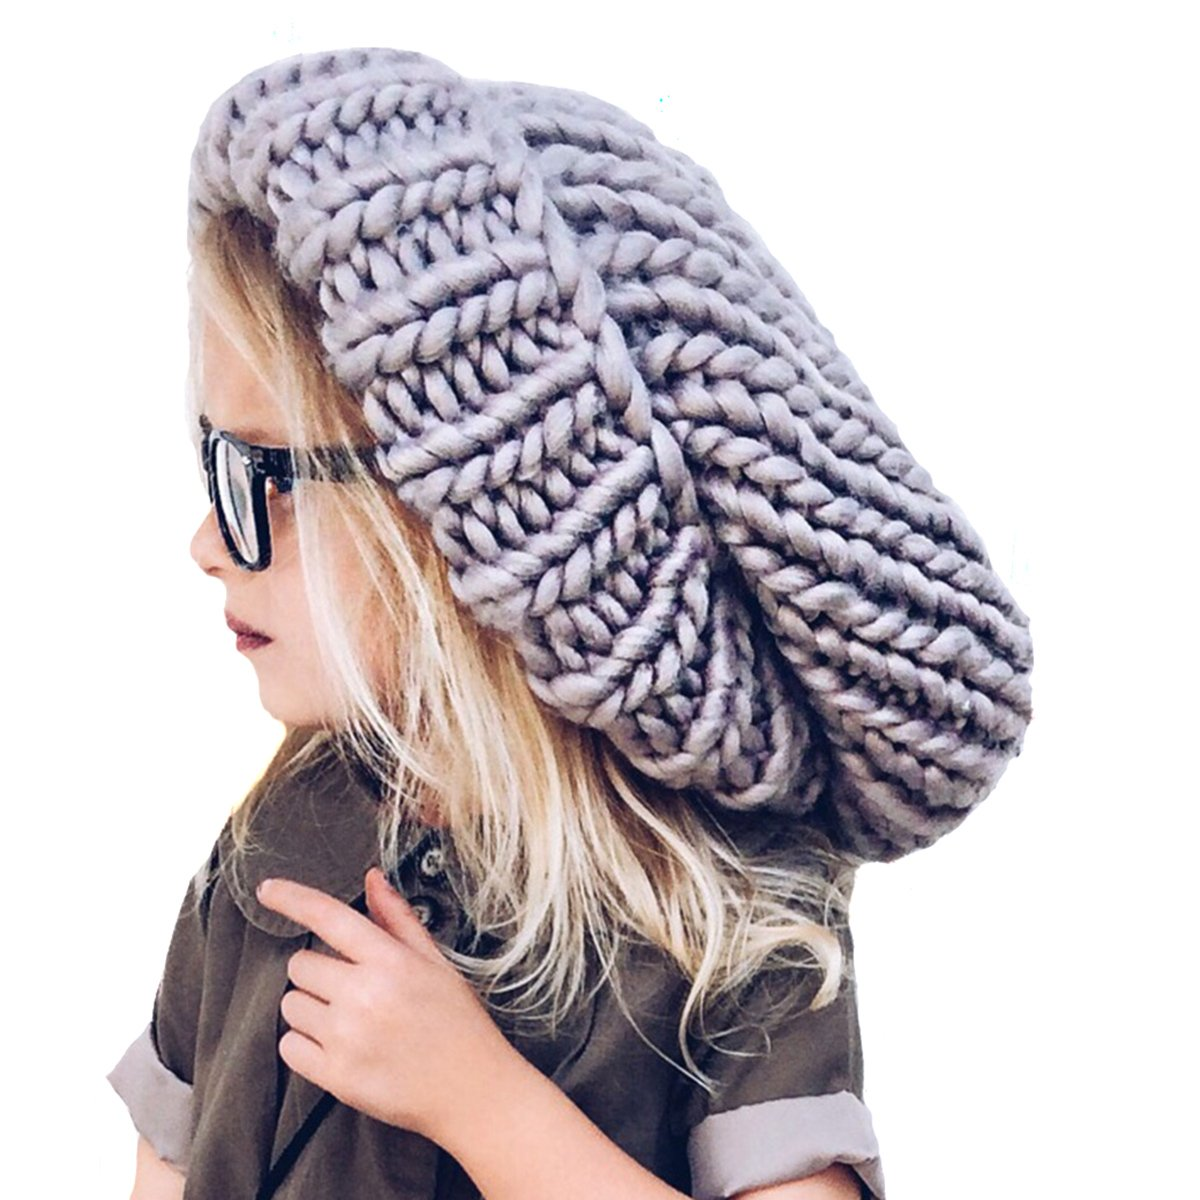 9472a15e949 SUPER FAST SHIPPING - HAND KNIT OVERSIZE SLOUCHY WINTER BEANIE HAT  Neon  Eaters has been a leader in funky knit hats since 2012. Their fun take on  boys ...